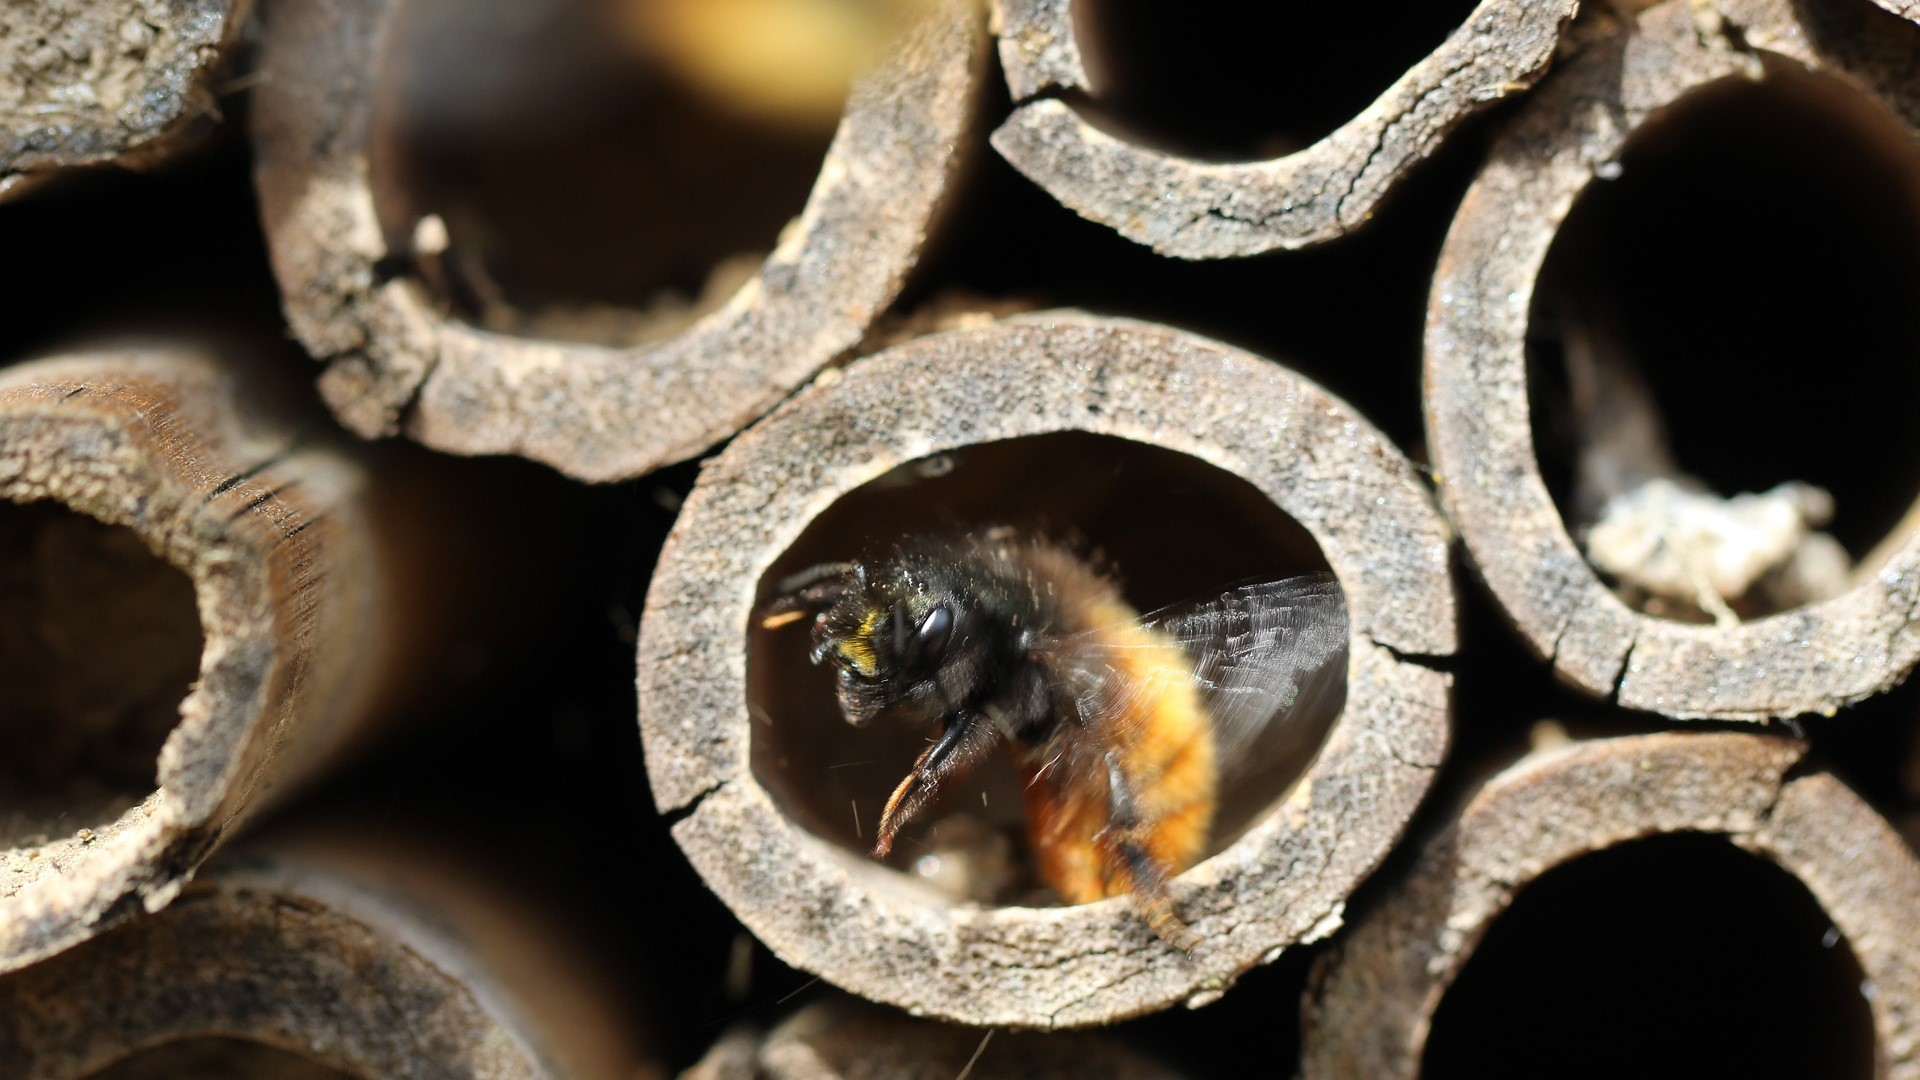 Attract Bees - Attract mason bees - mason bee nesting - Bee hotel 4